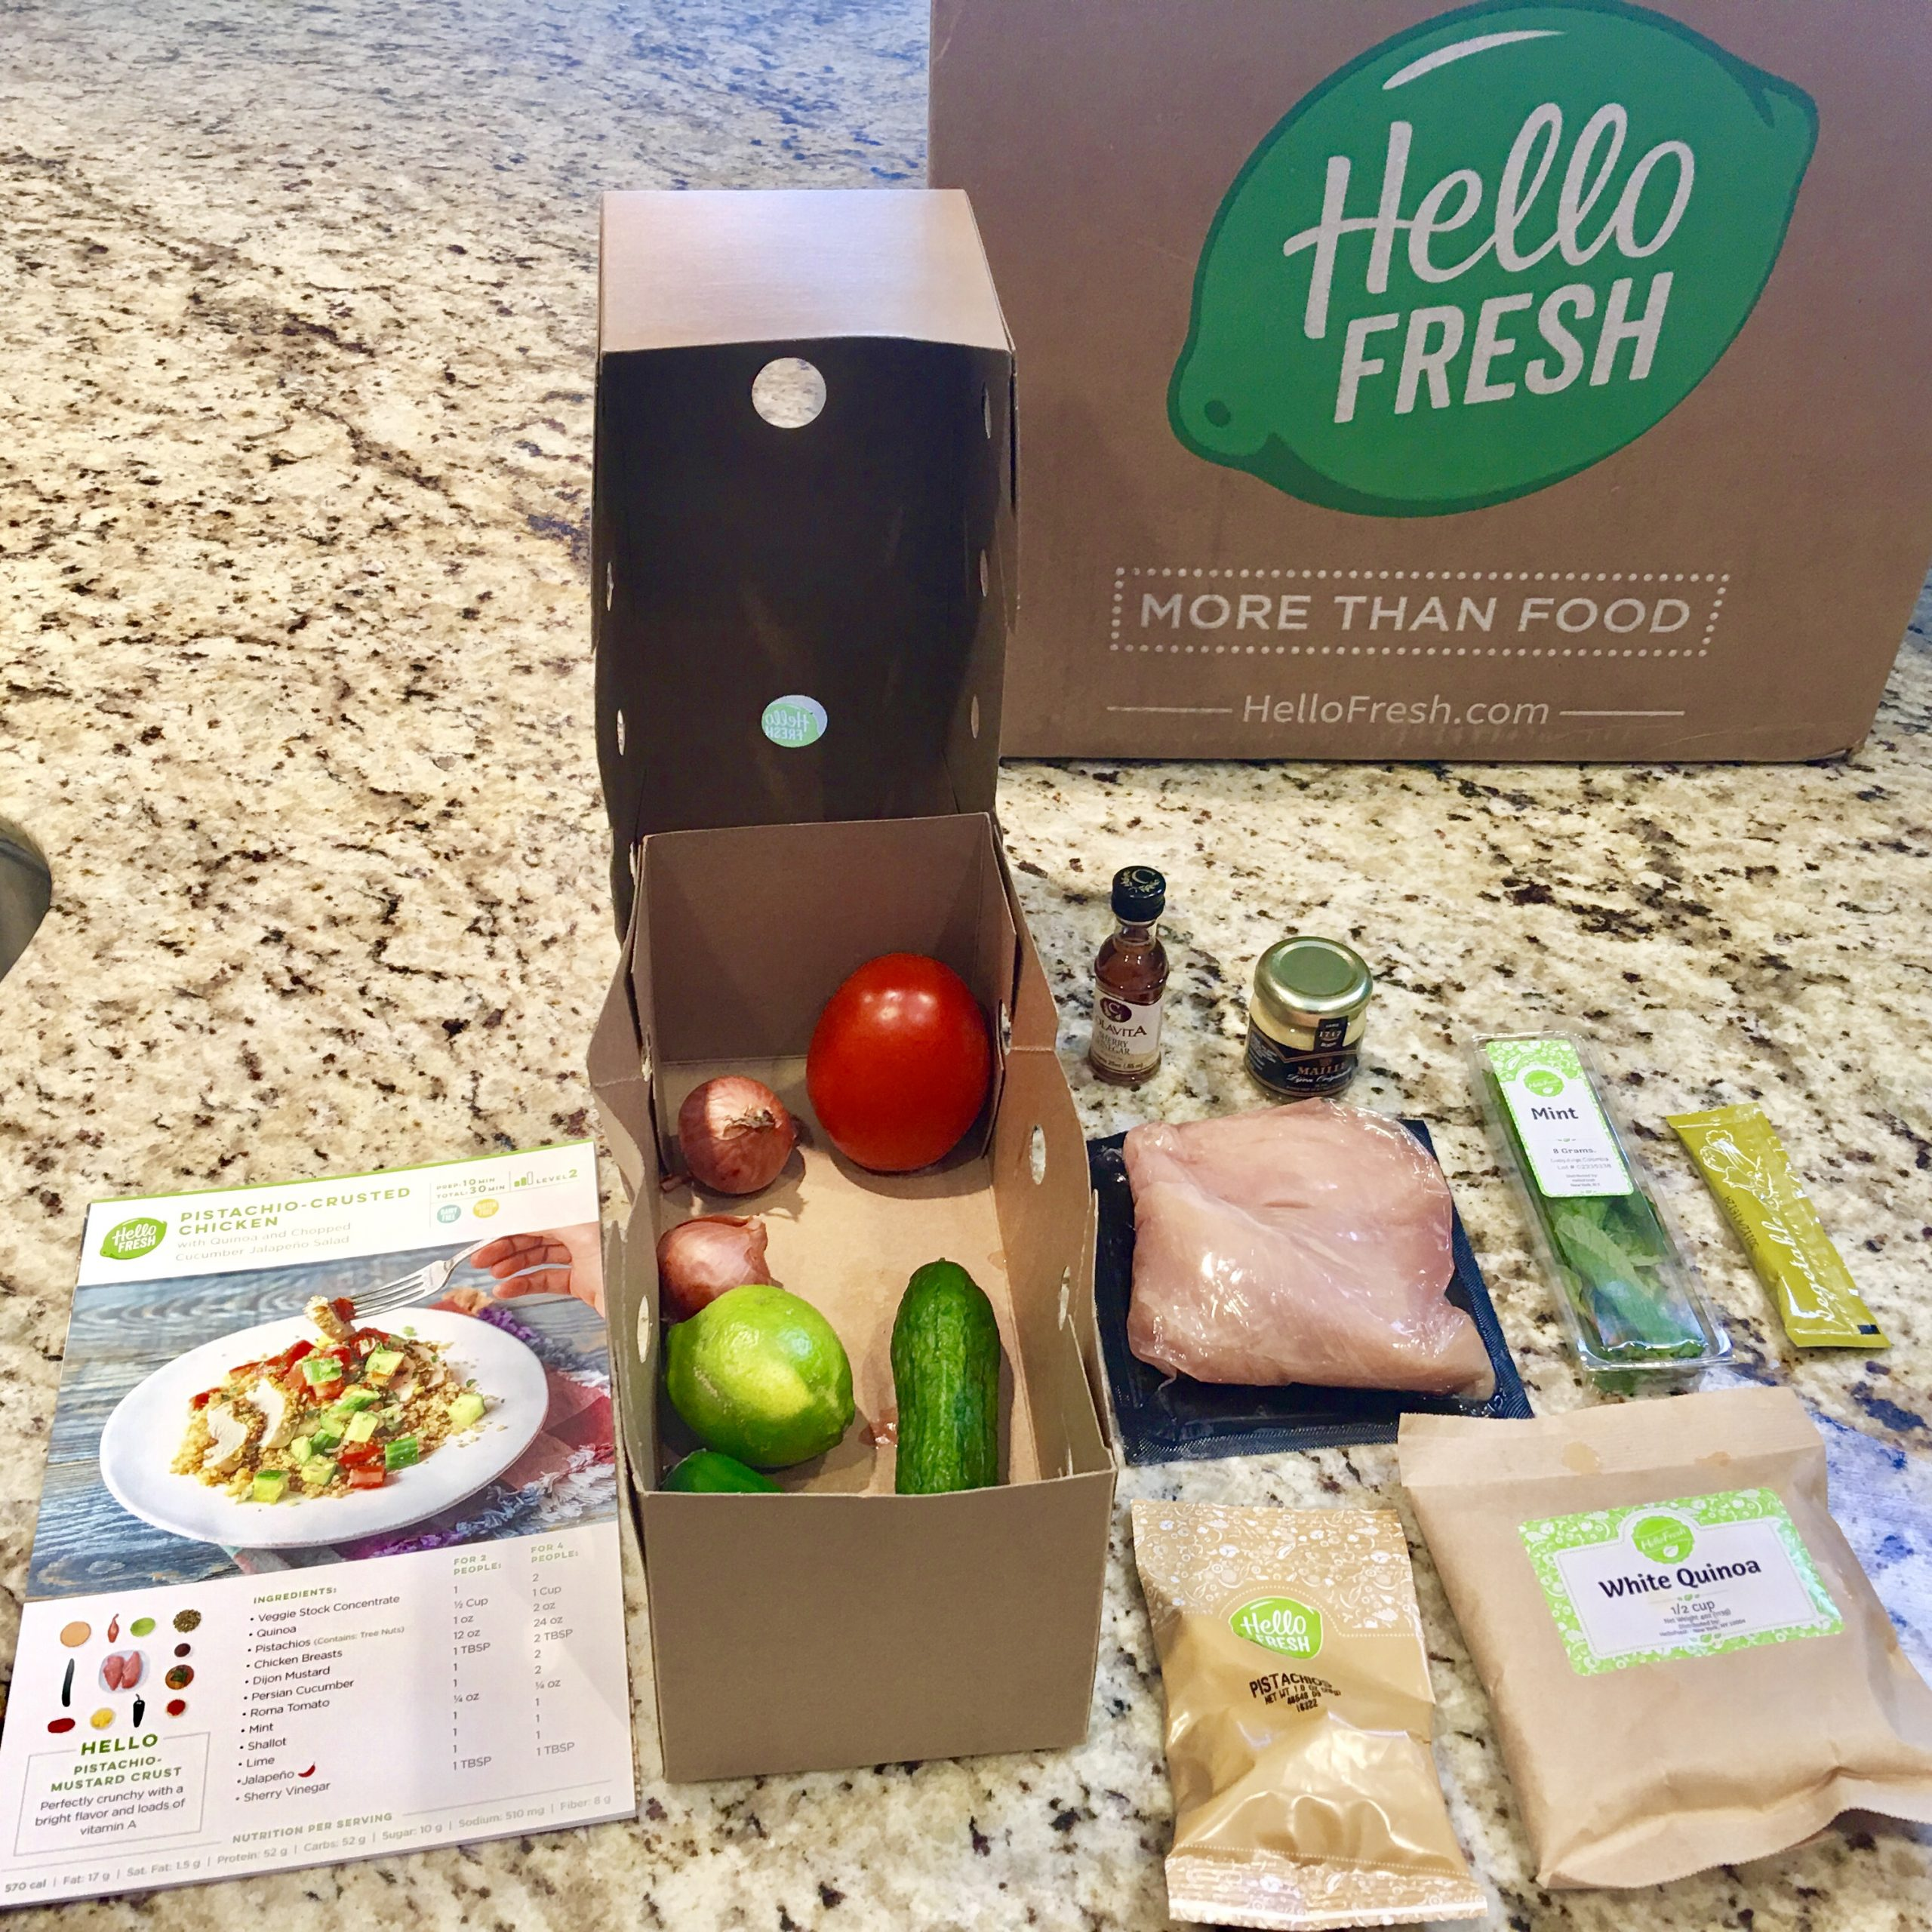 Is Hellofresh Actually Good